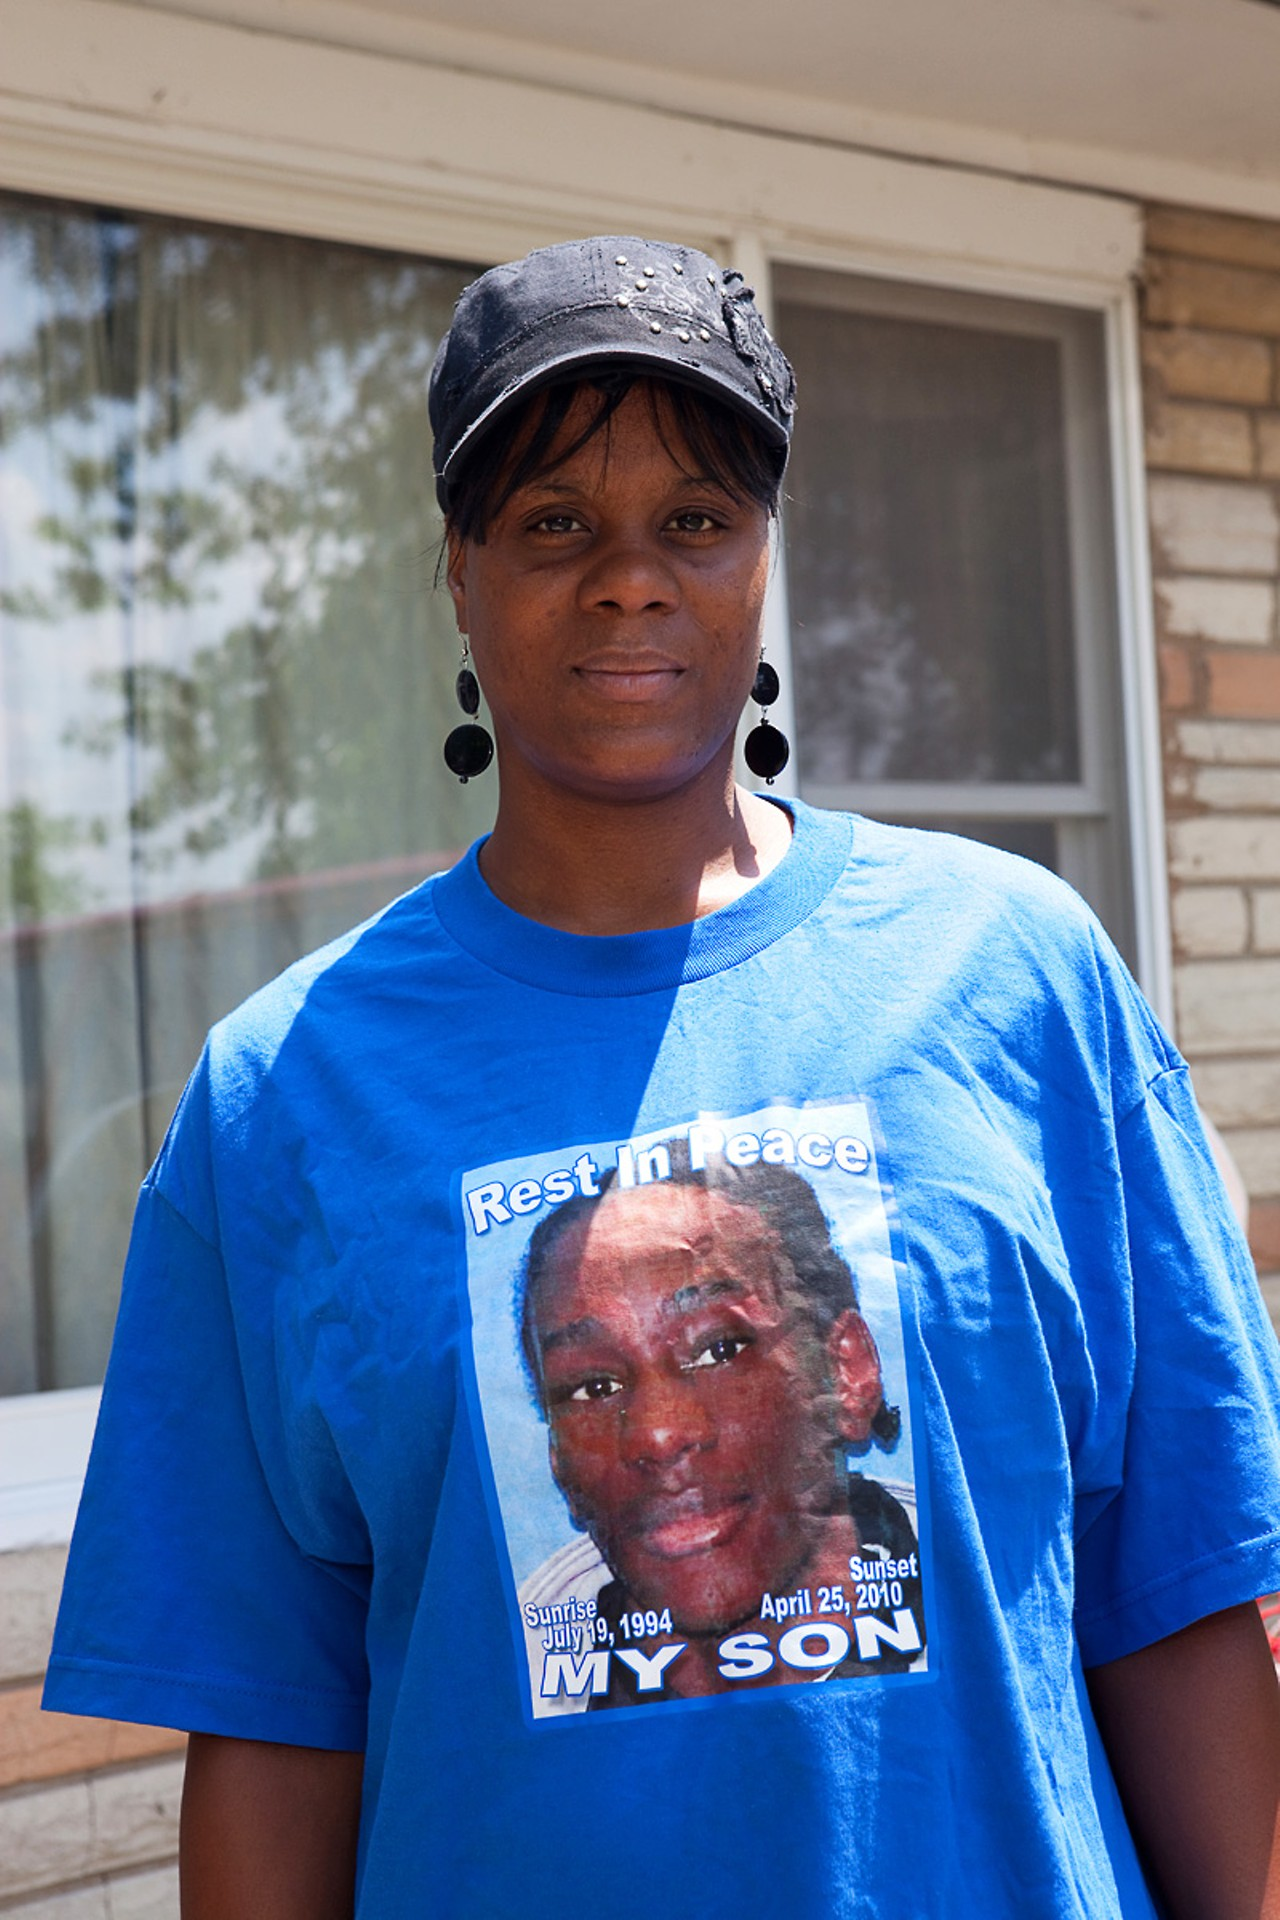 Racial tensions flare in the wake of the hanging death of